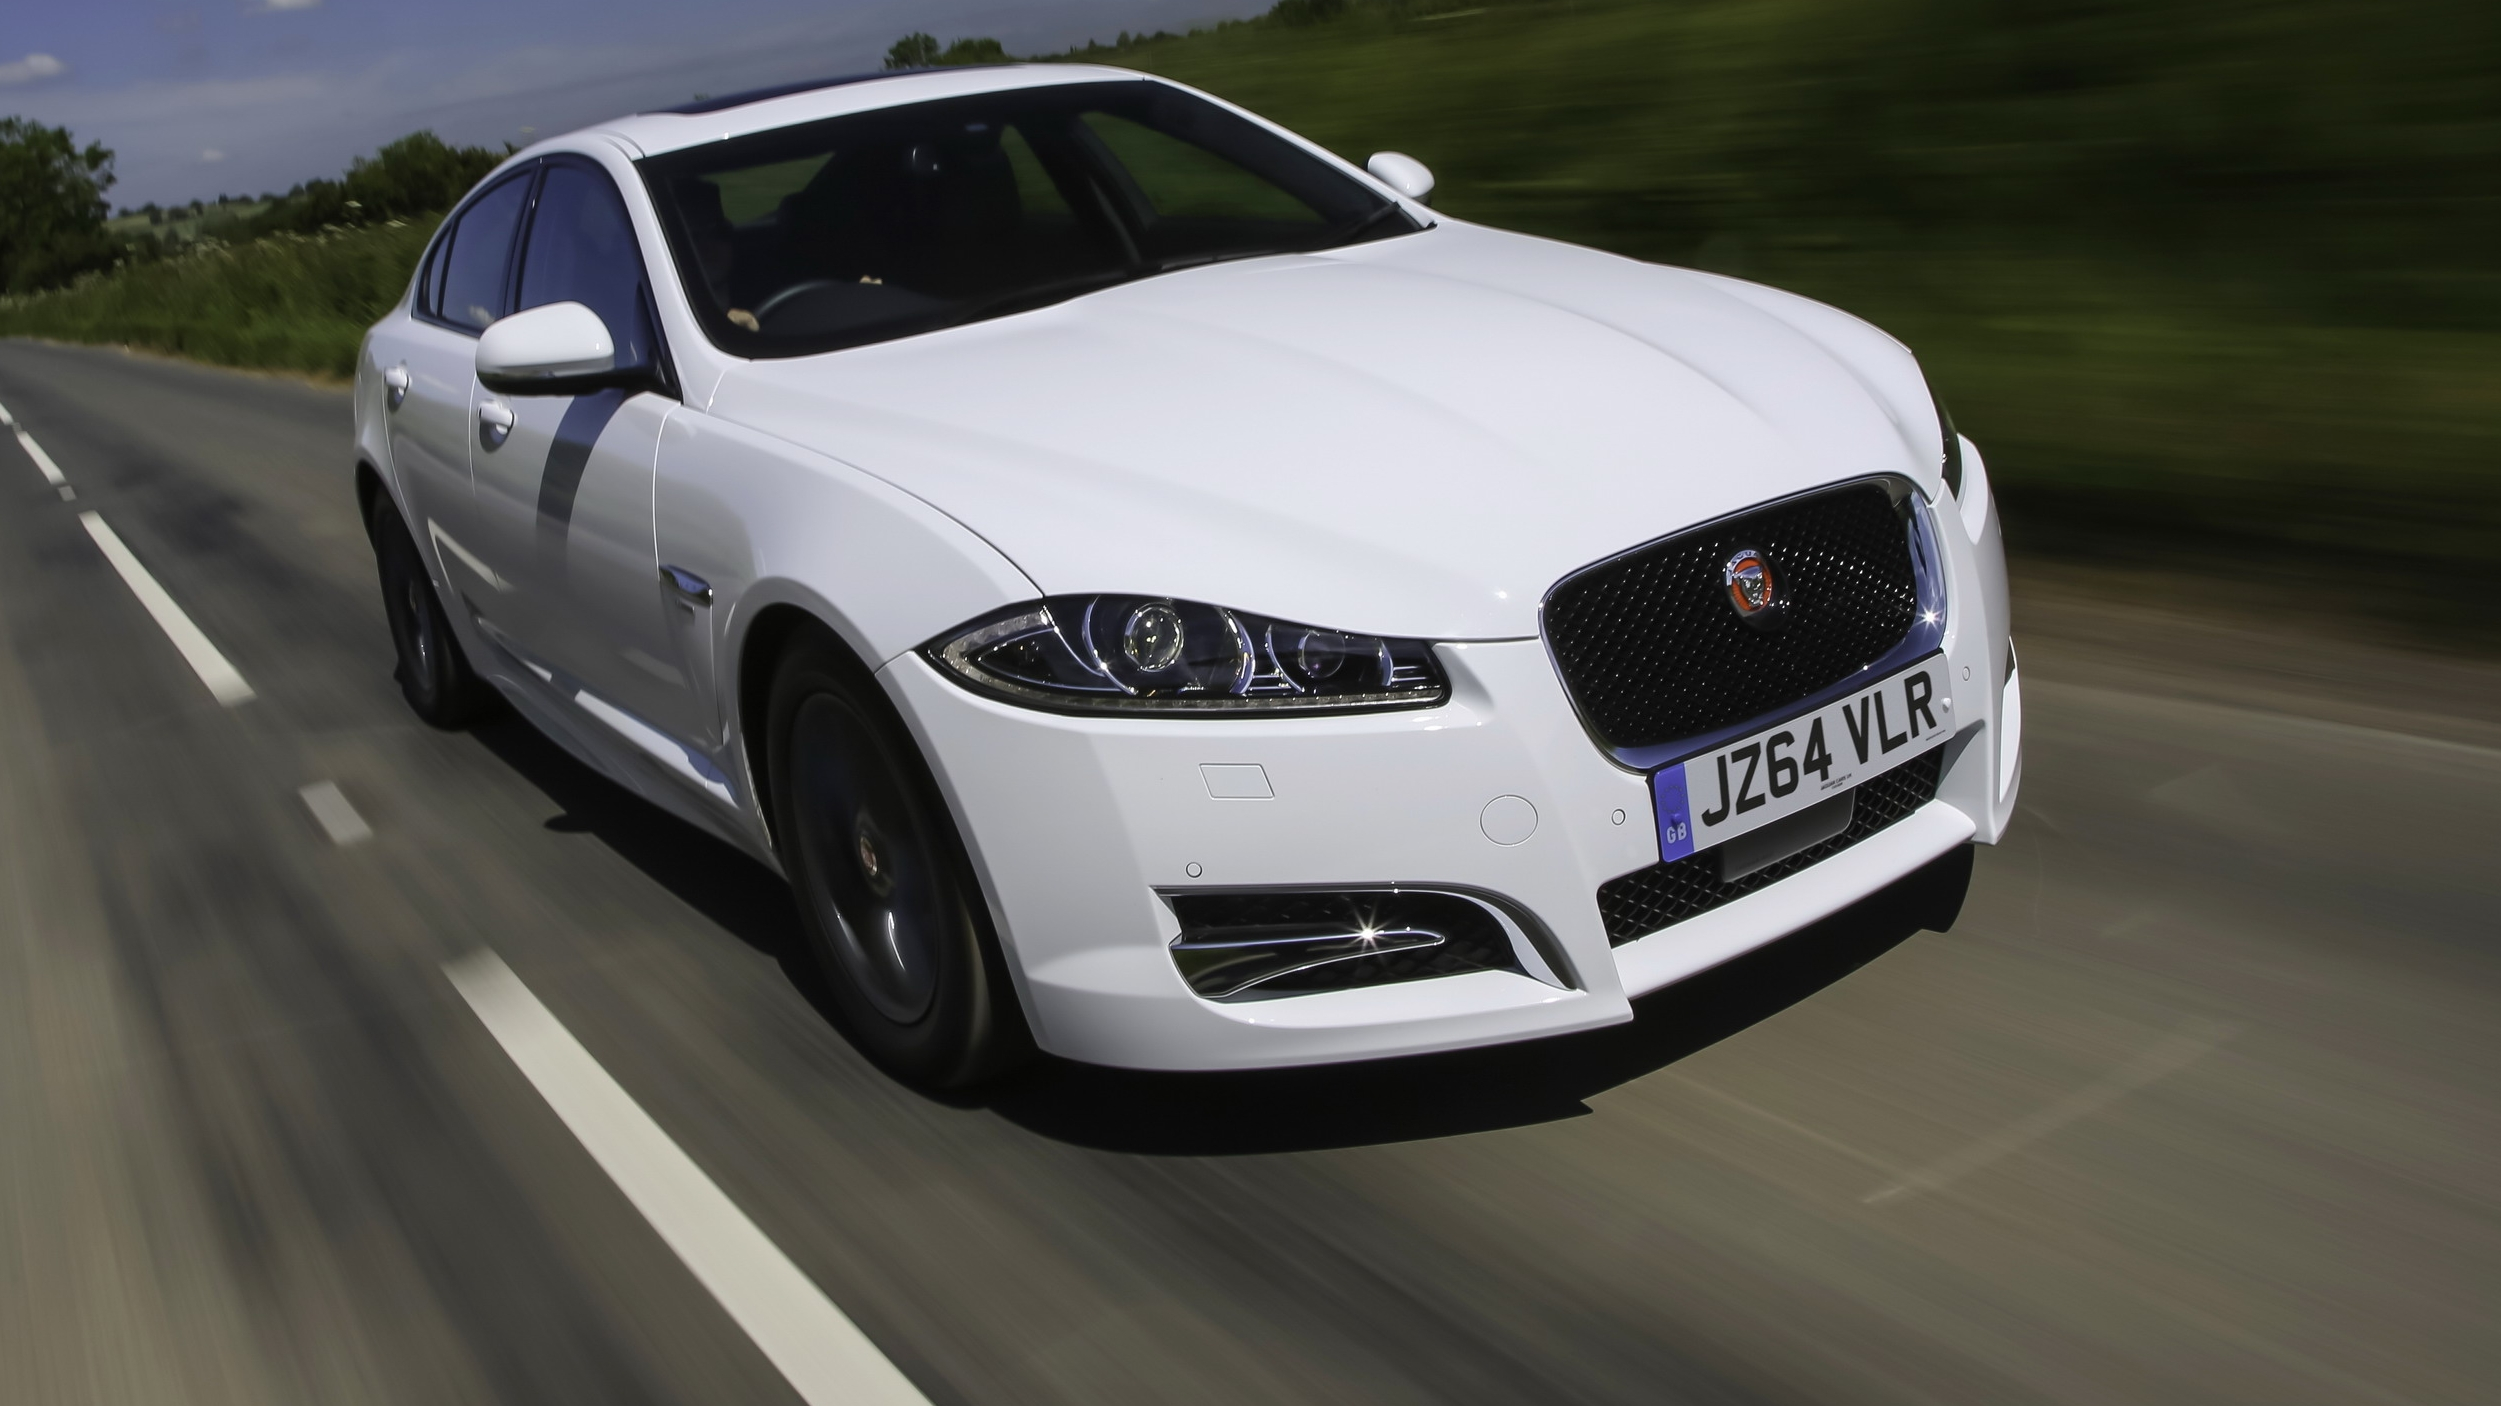 2015 jaguar xf r sport black review top speed. Black Bedroom Furniture Sets. Home Design Ideas